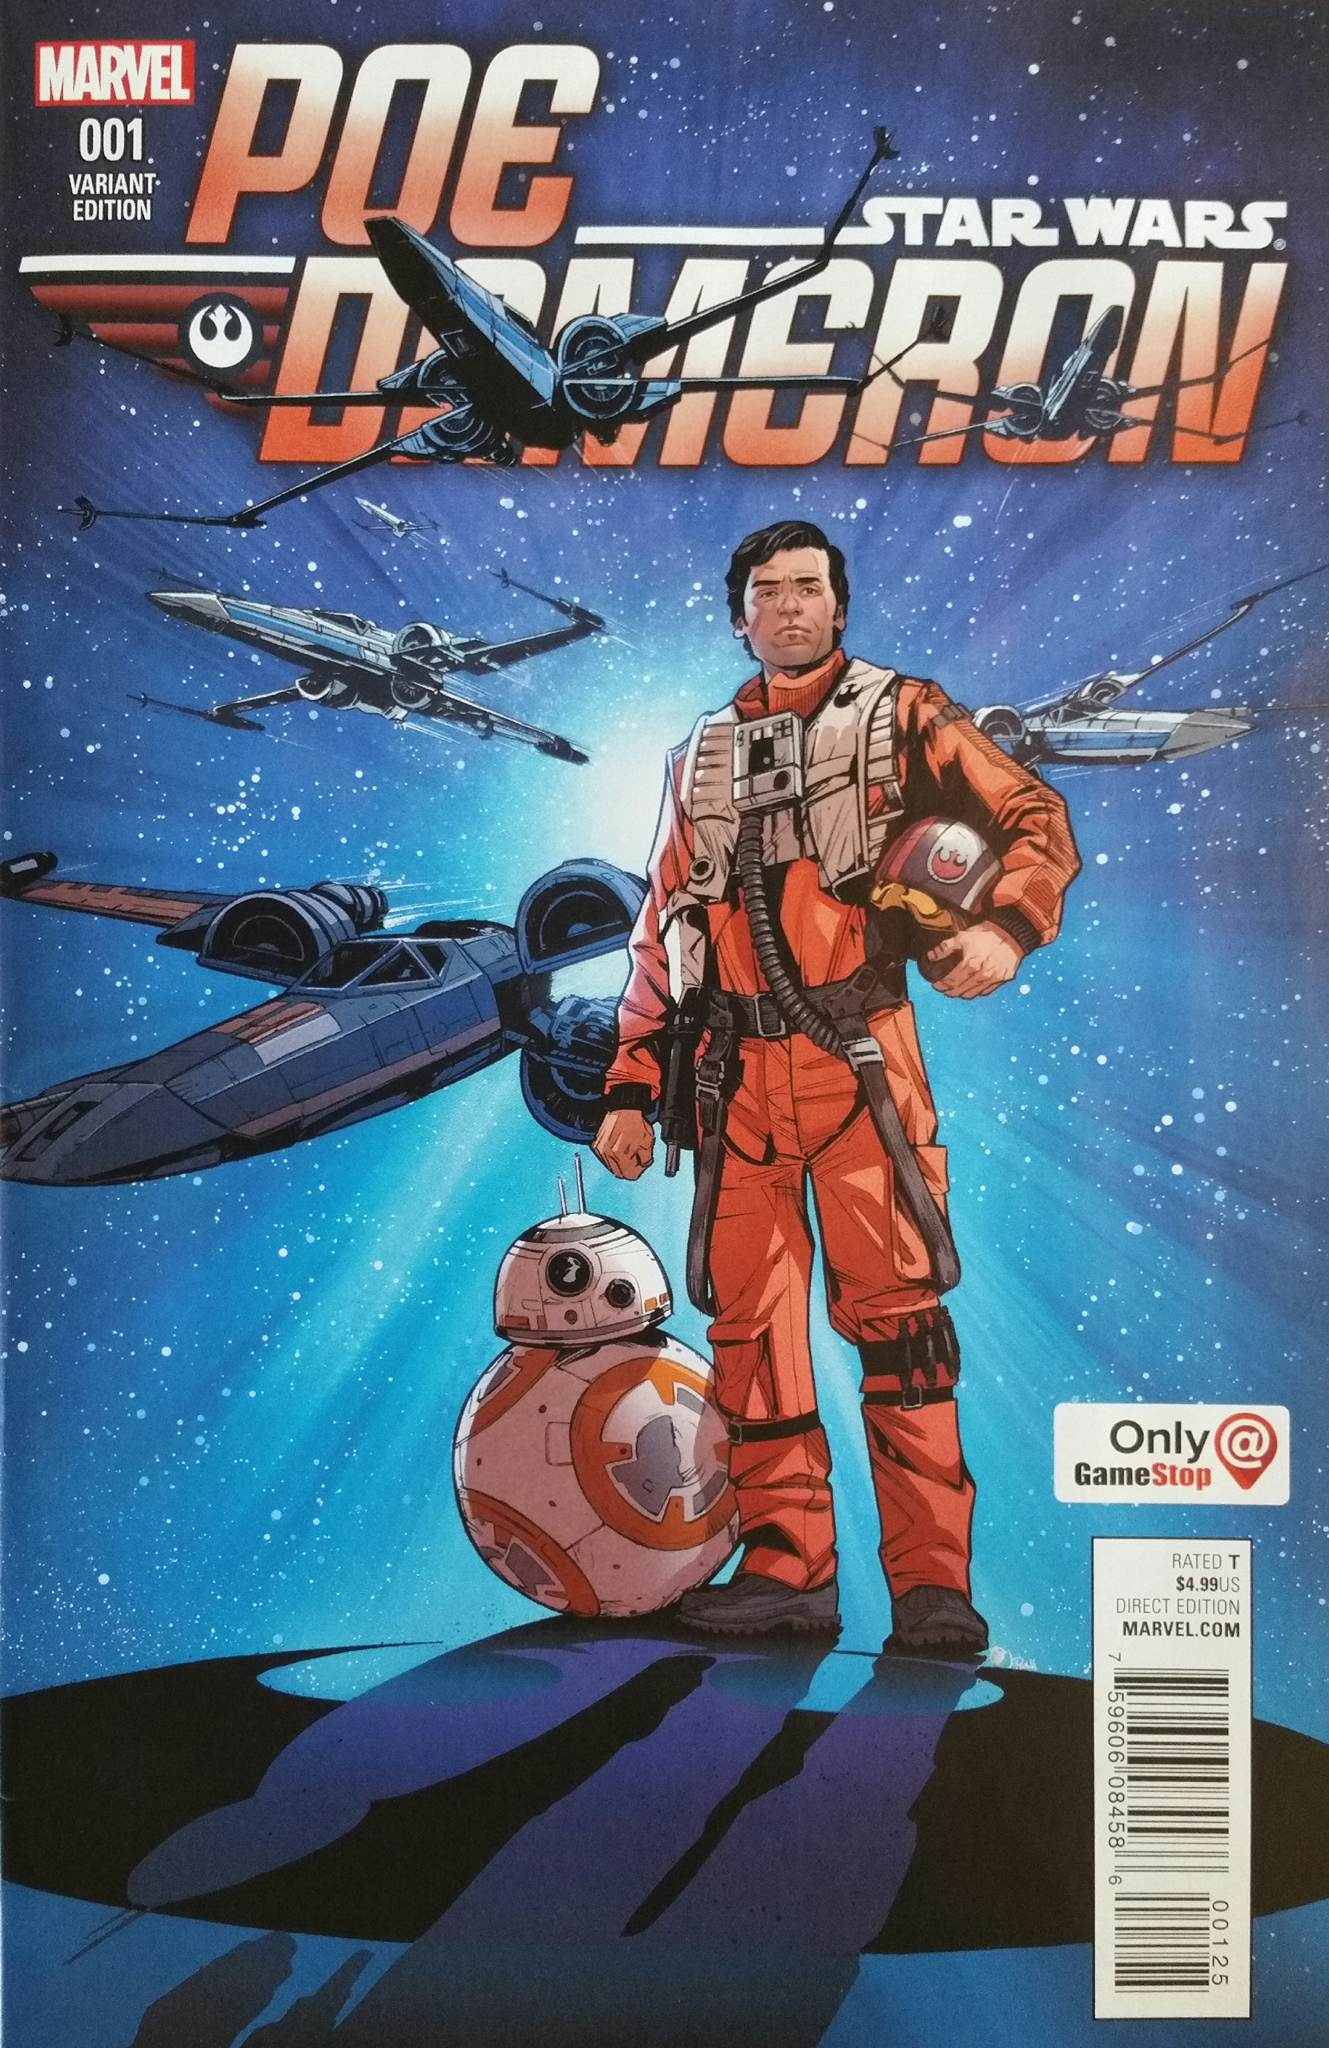 Poe Dameron #1 (Joëlle Jones GameStop Variant Cover) (04.05.2016)